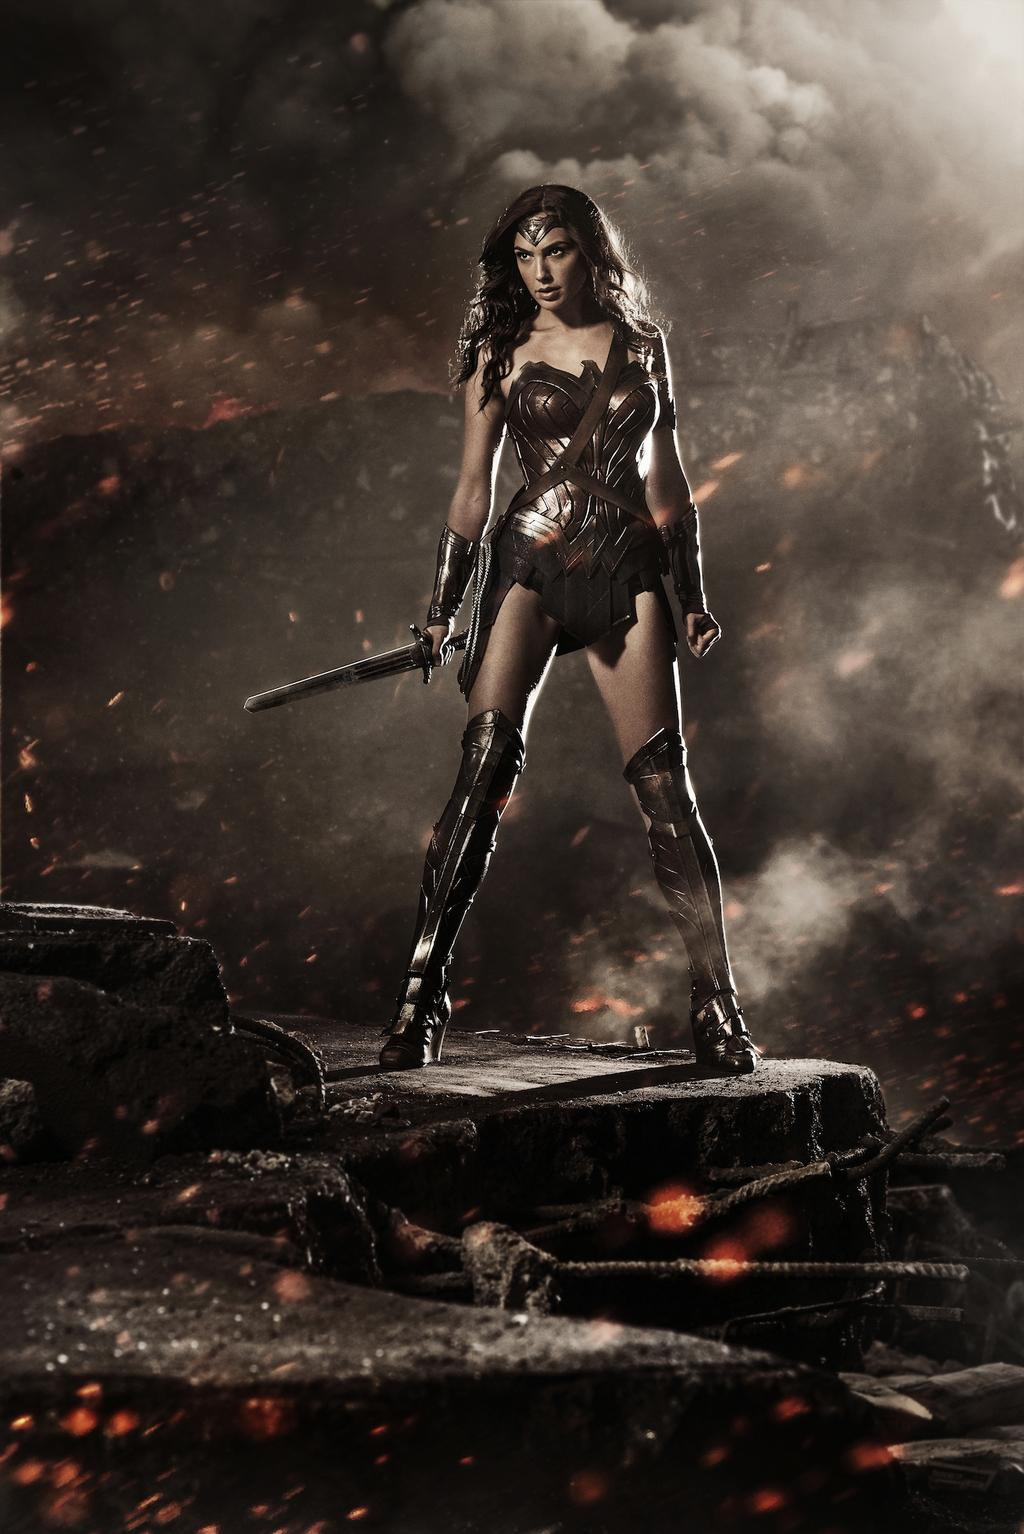 batman v superman: Dawn of justice wionder woman